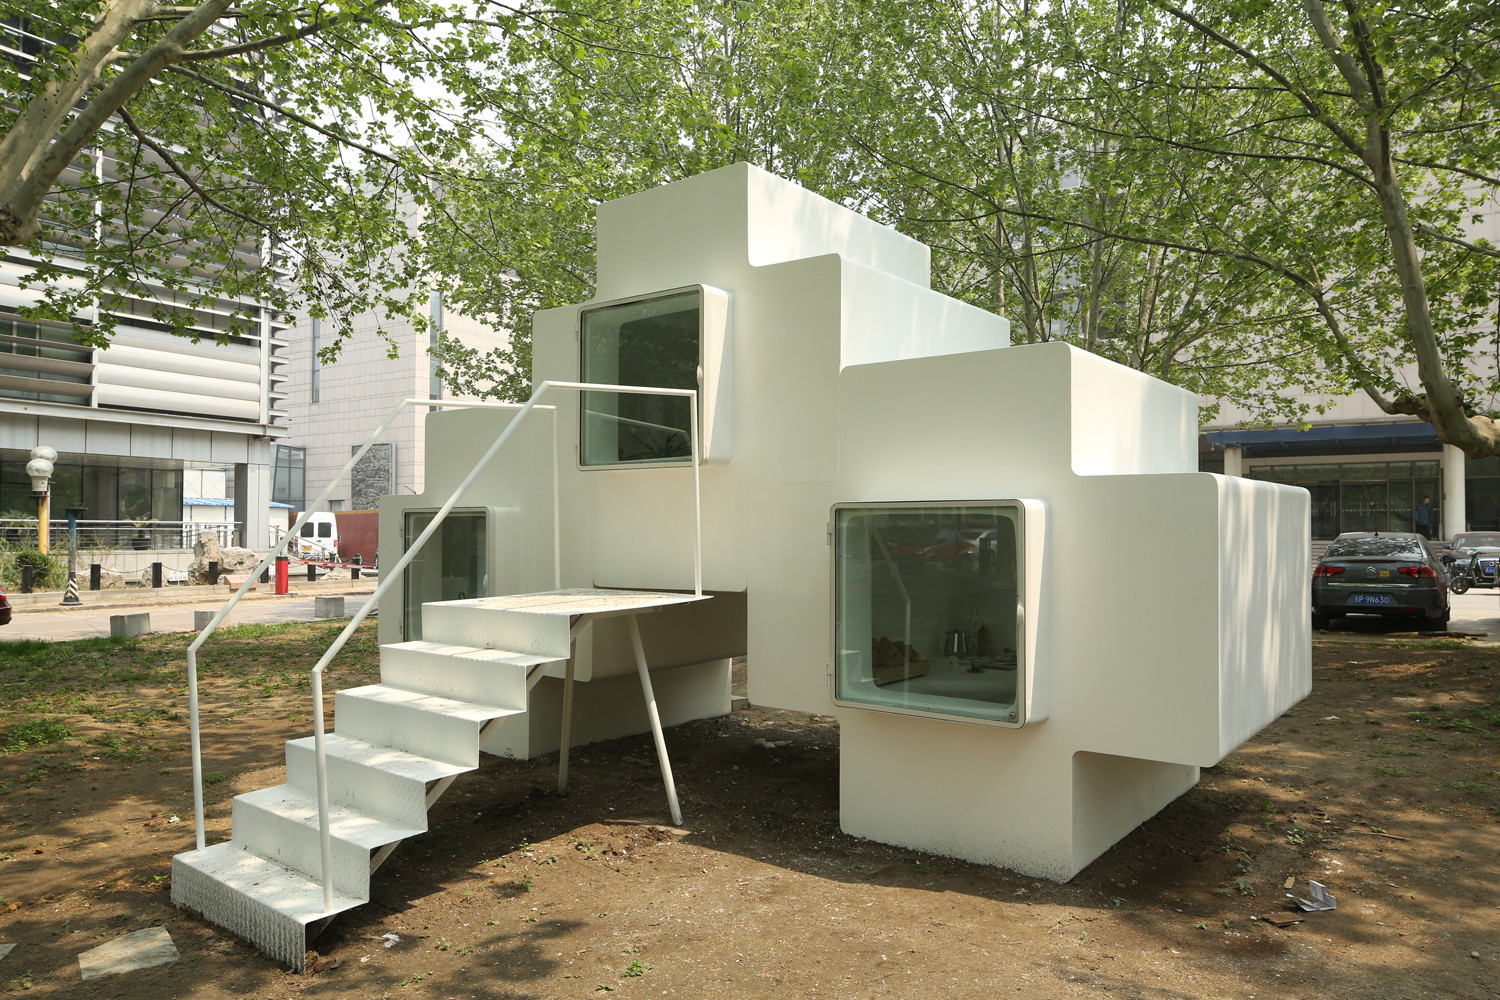 courtesy of studio liu lubin - Micro Houses